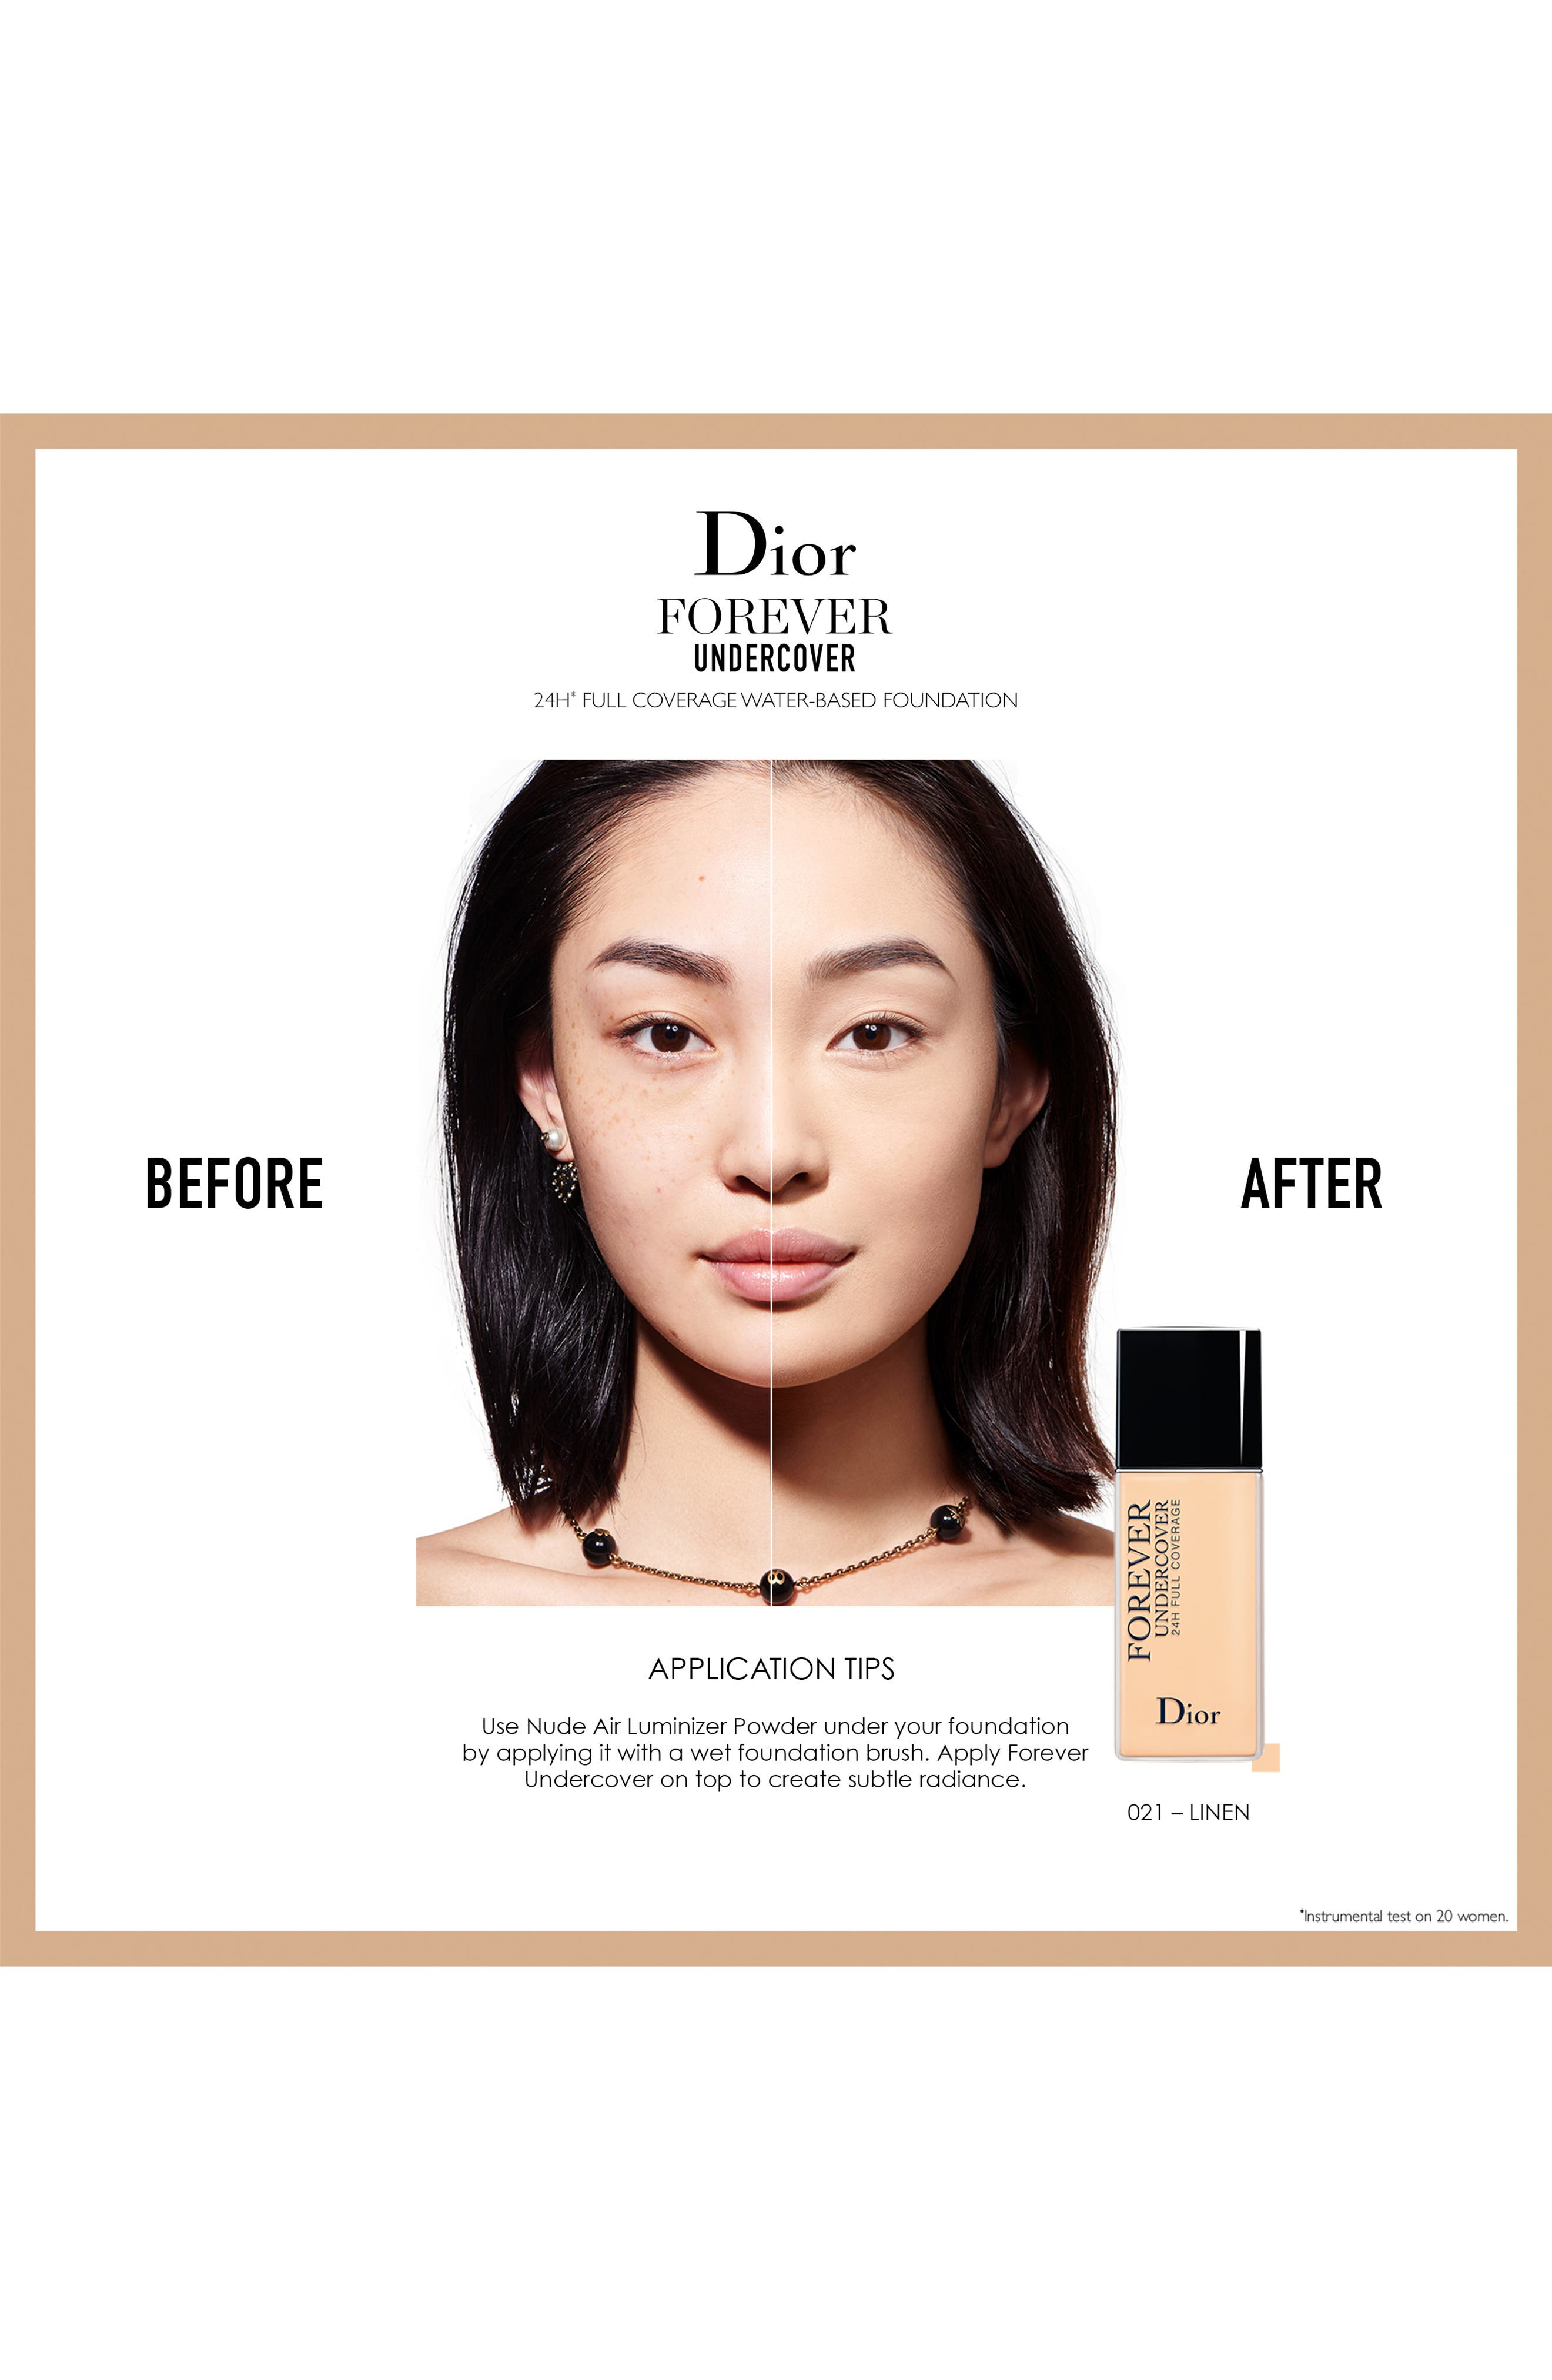 DIOR, Diorskin Forever Undercover 24-Hour Full Coverage Water-Based Foundation, Alternate thumbnail 3, color, 051 PRALINE